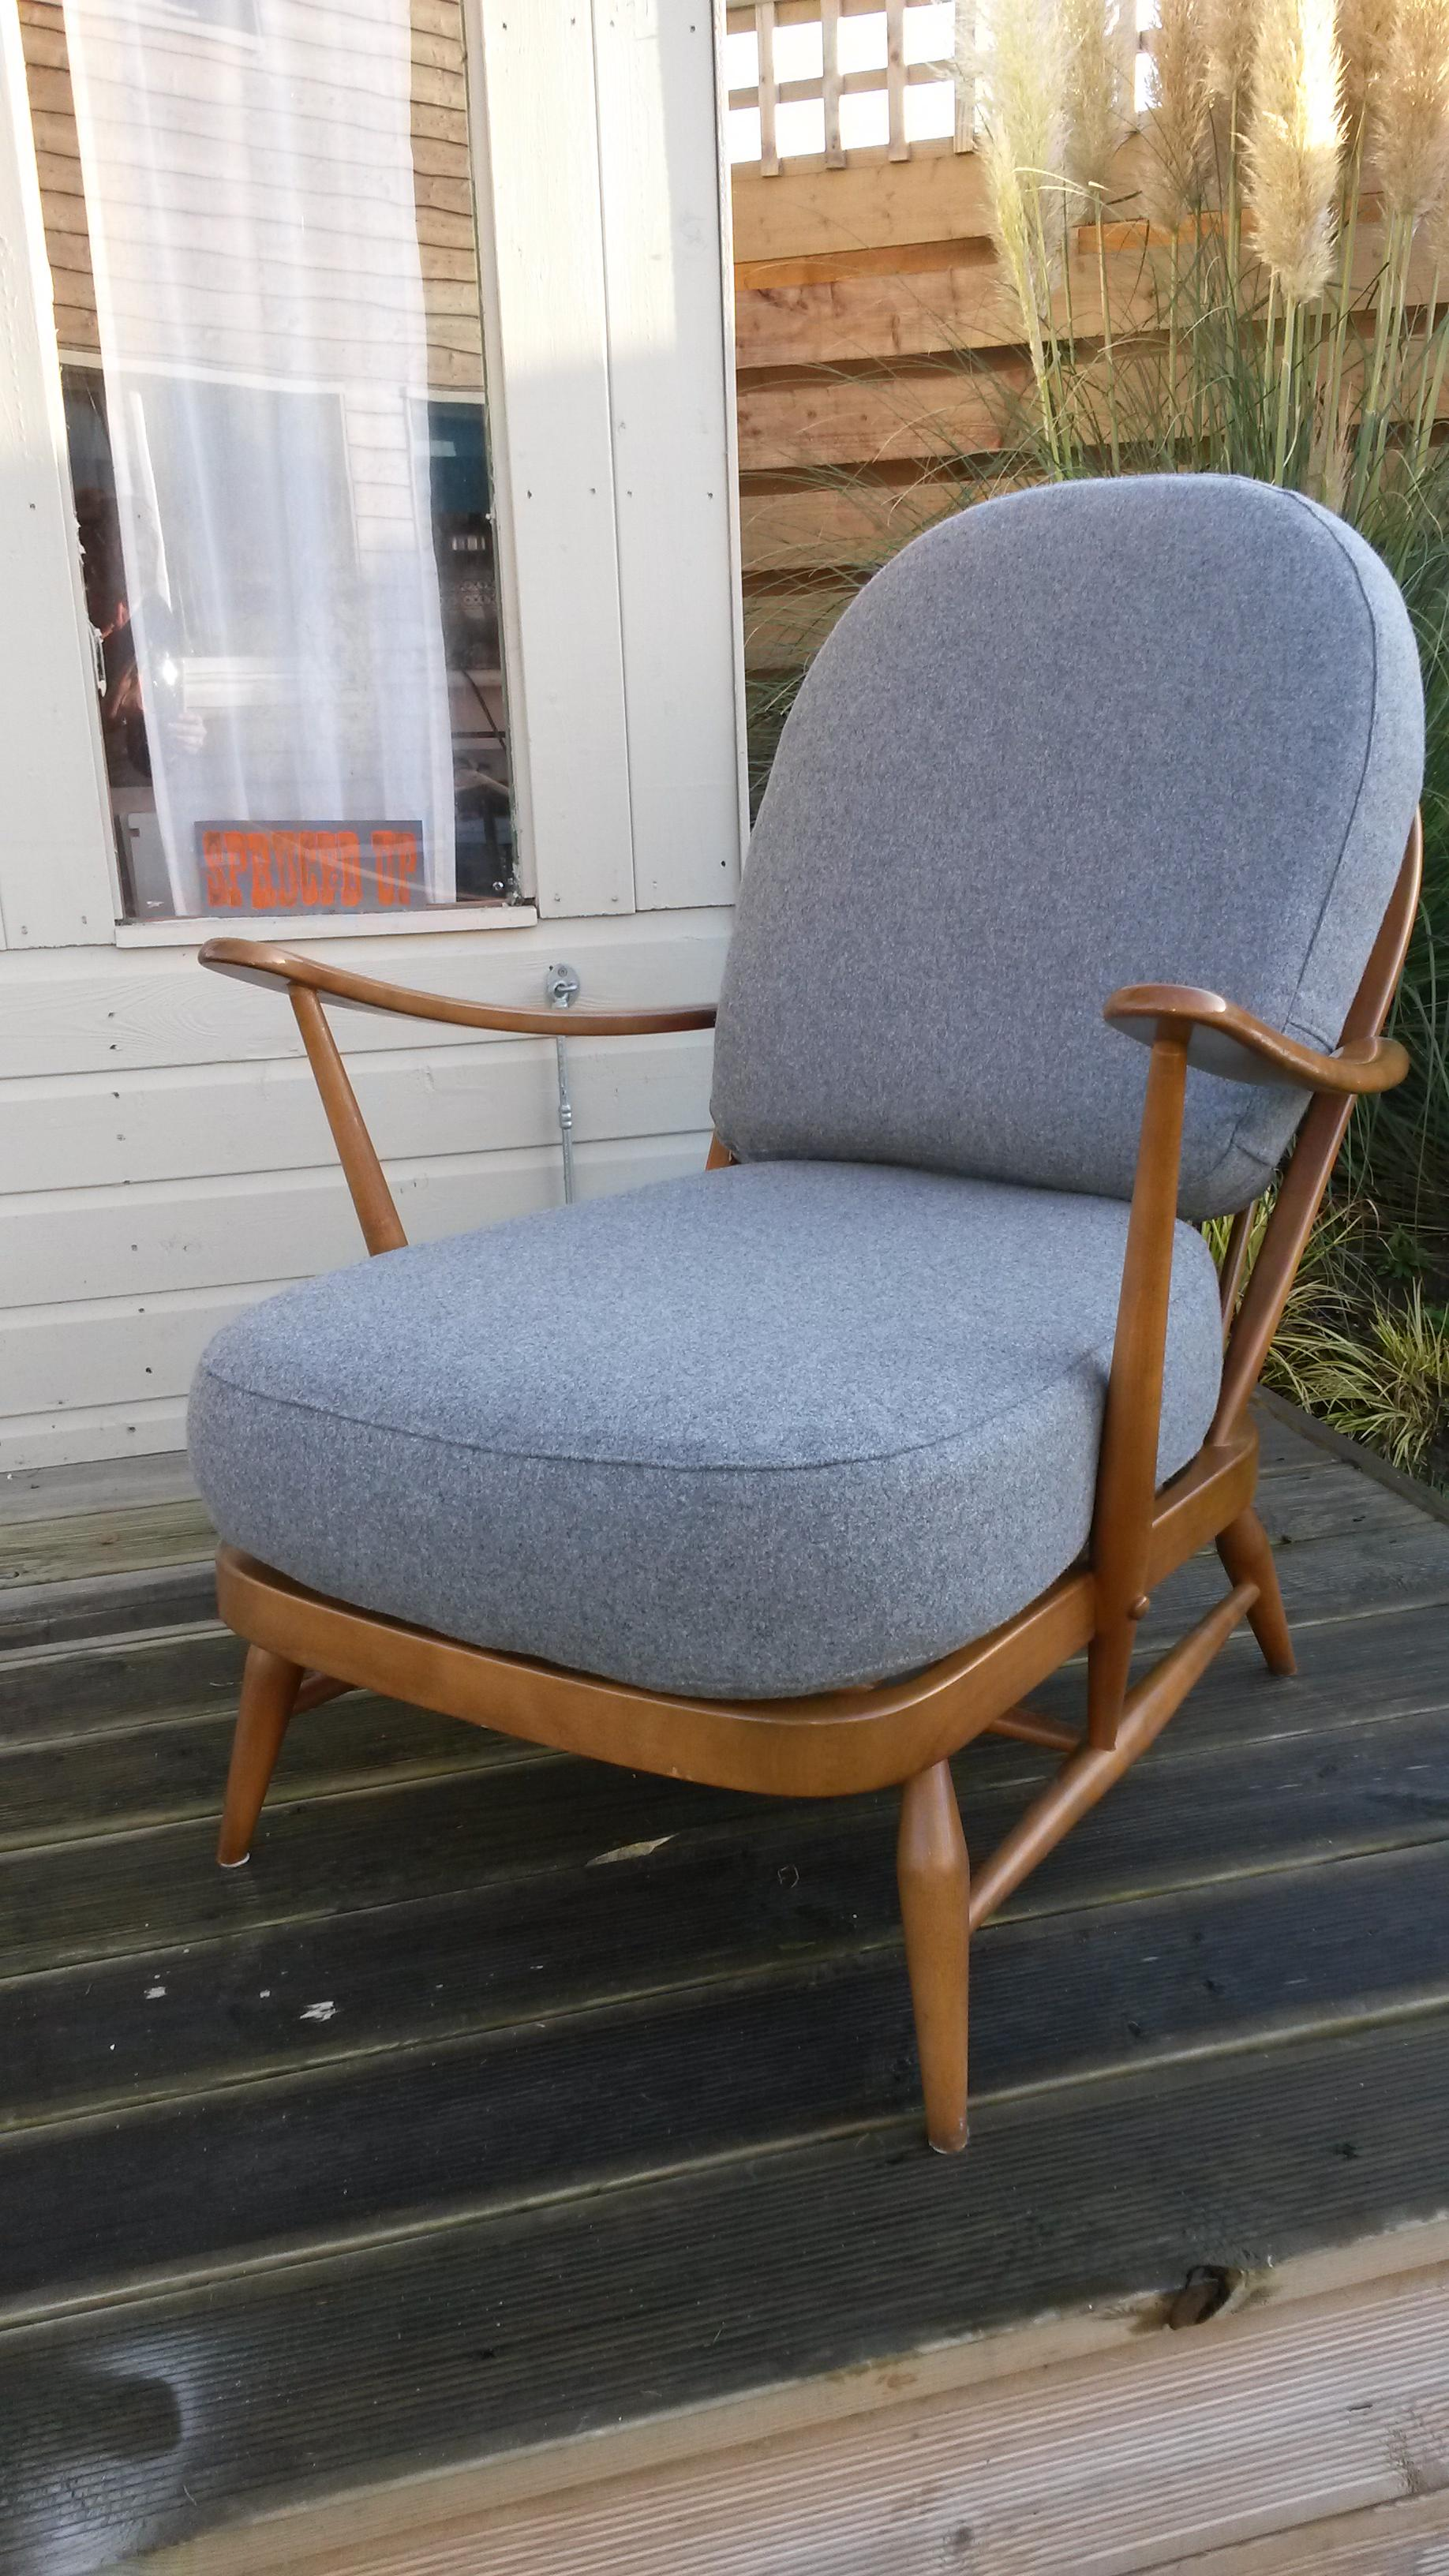 Ercol Chairs & Cushions